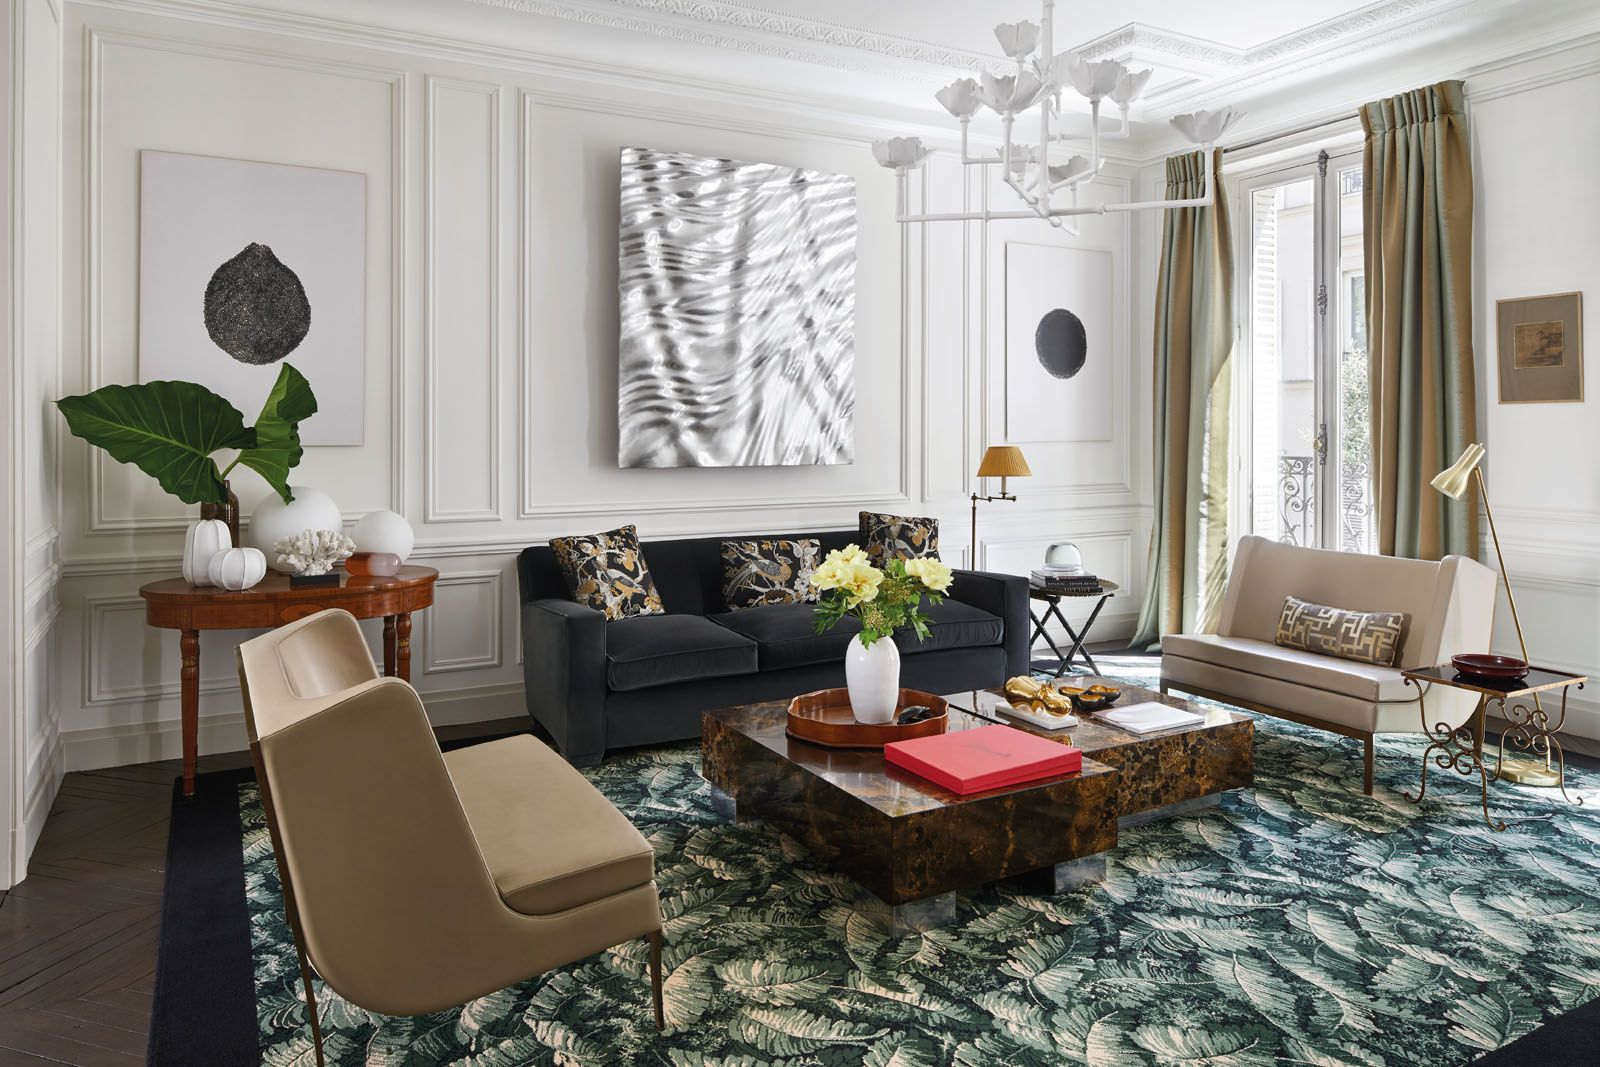 champeau and wilde Champeau and Wilde Create Bring Modern Design To This Paris Apartment Champeau and Wilde Create Bring Modern Design To This Paris Apartment 5